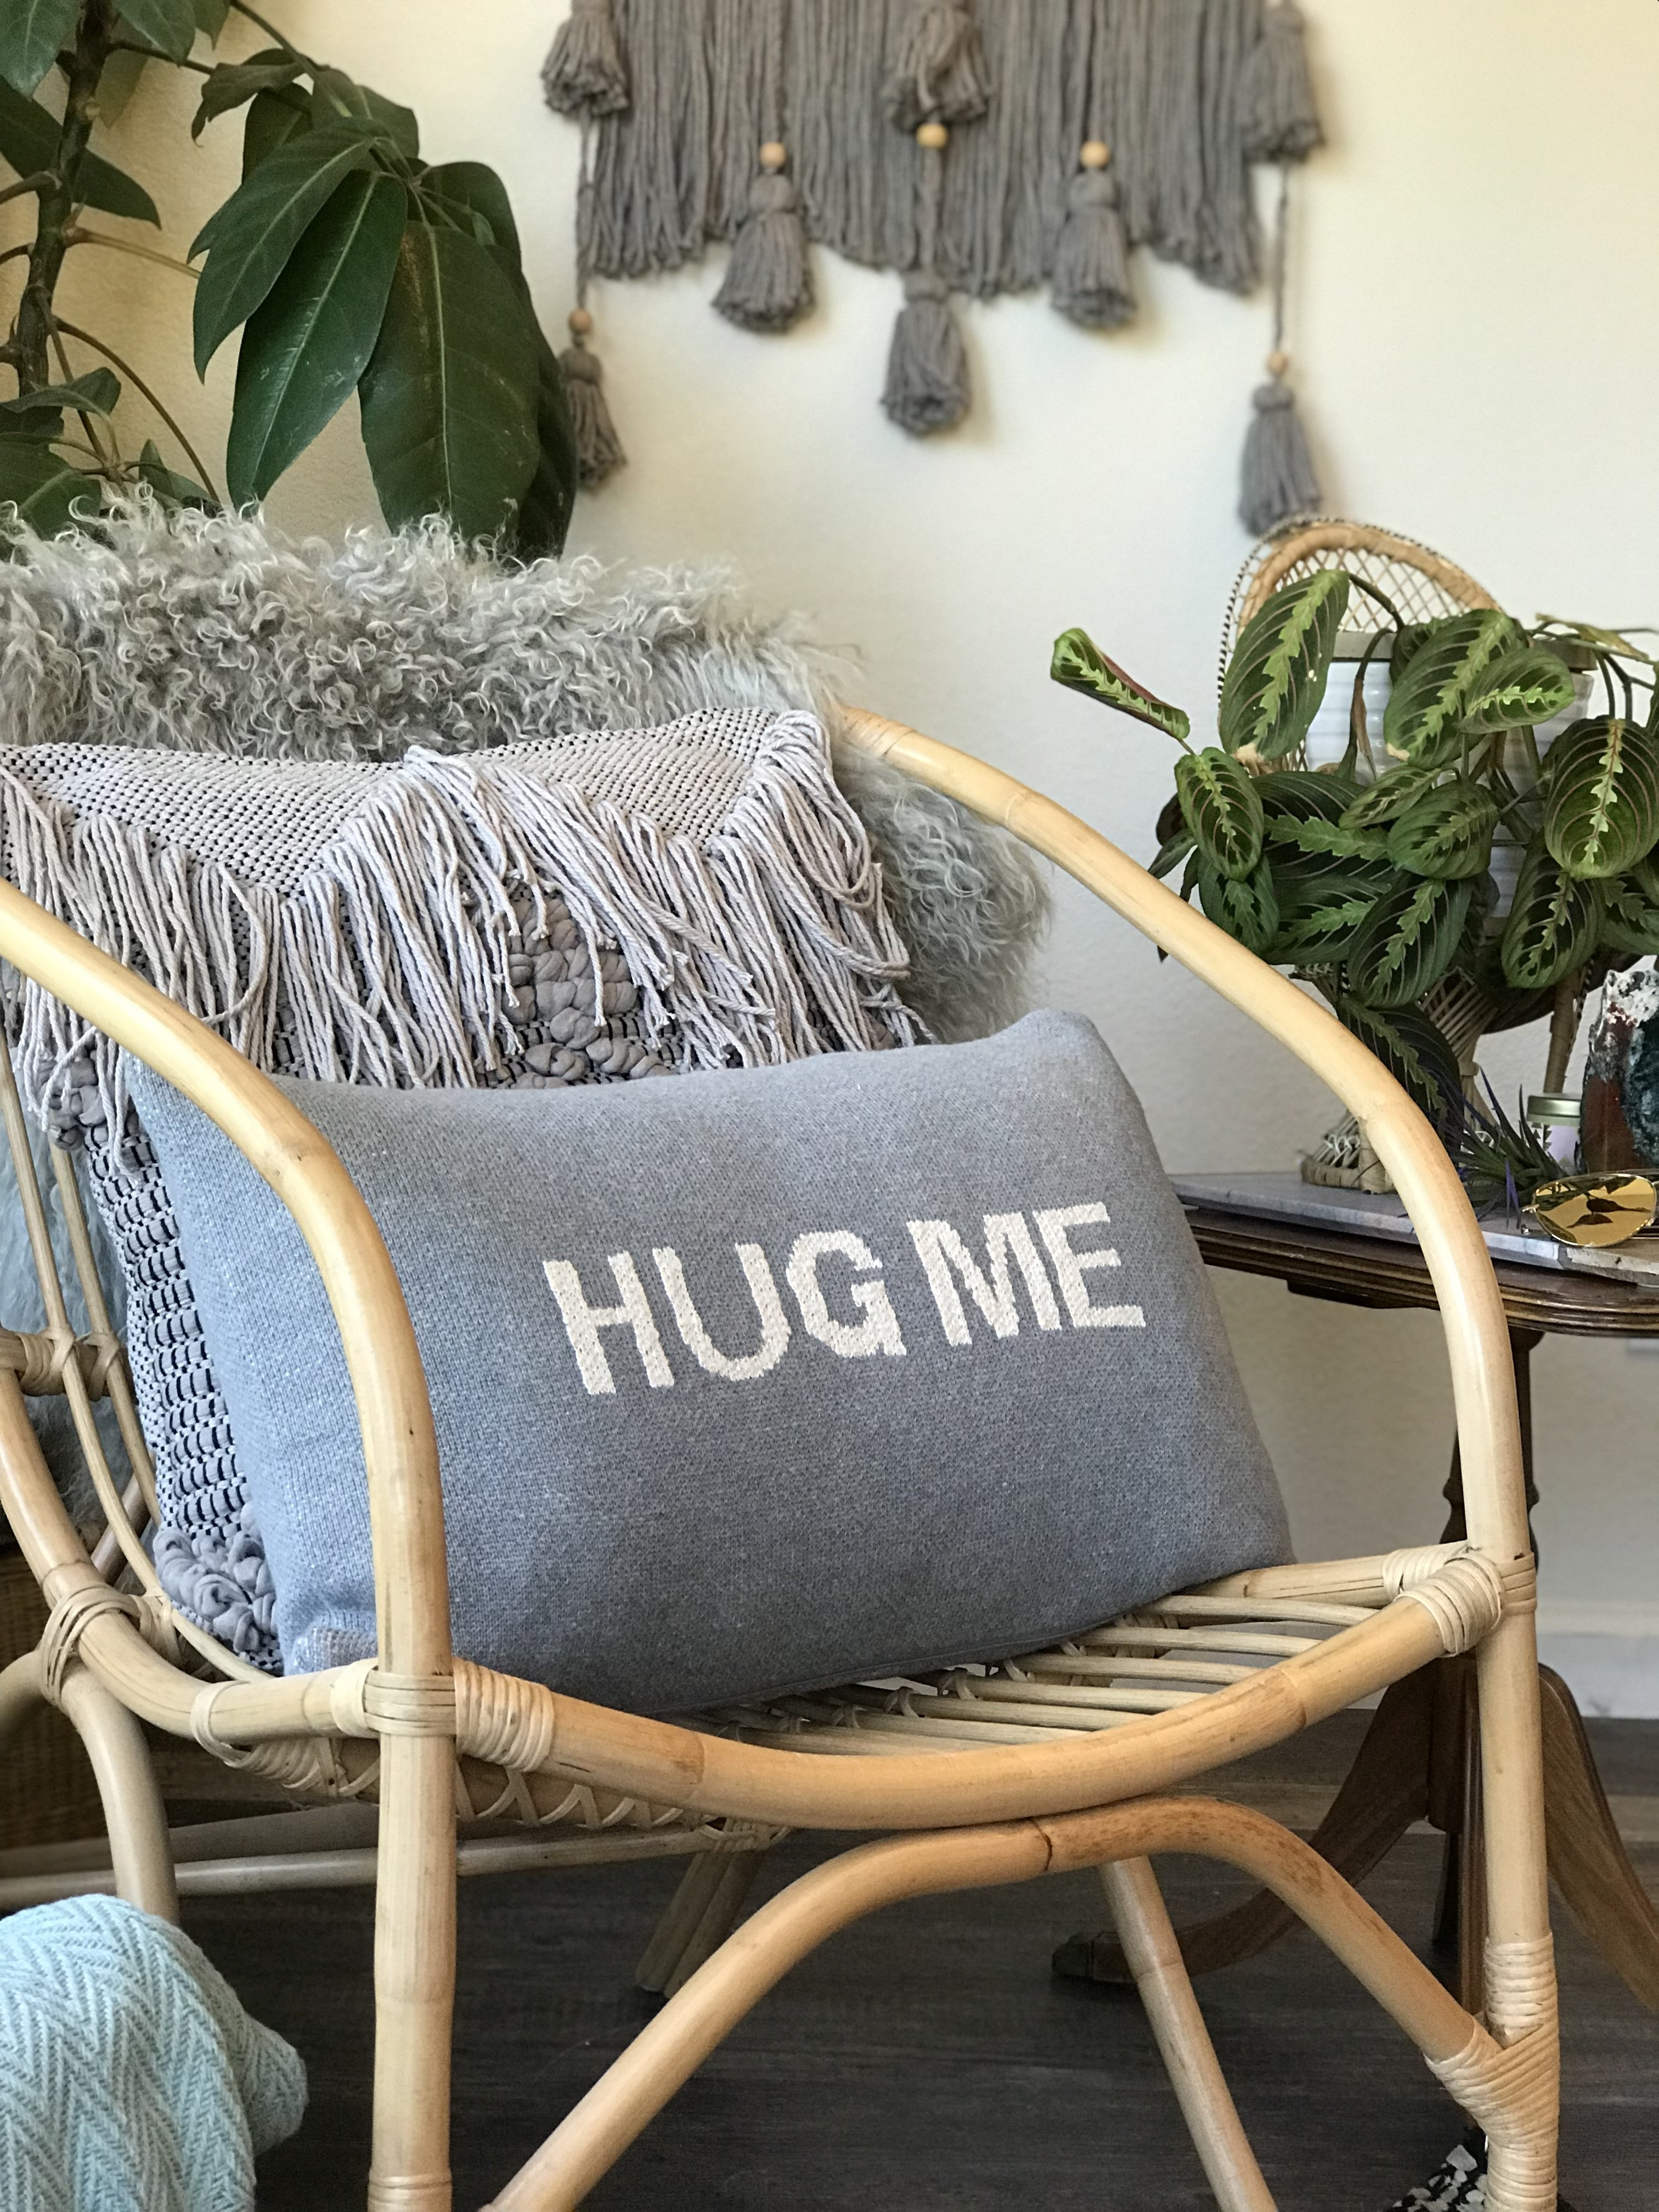 hug me pillow da8035